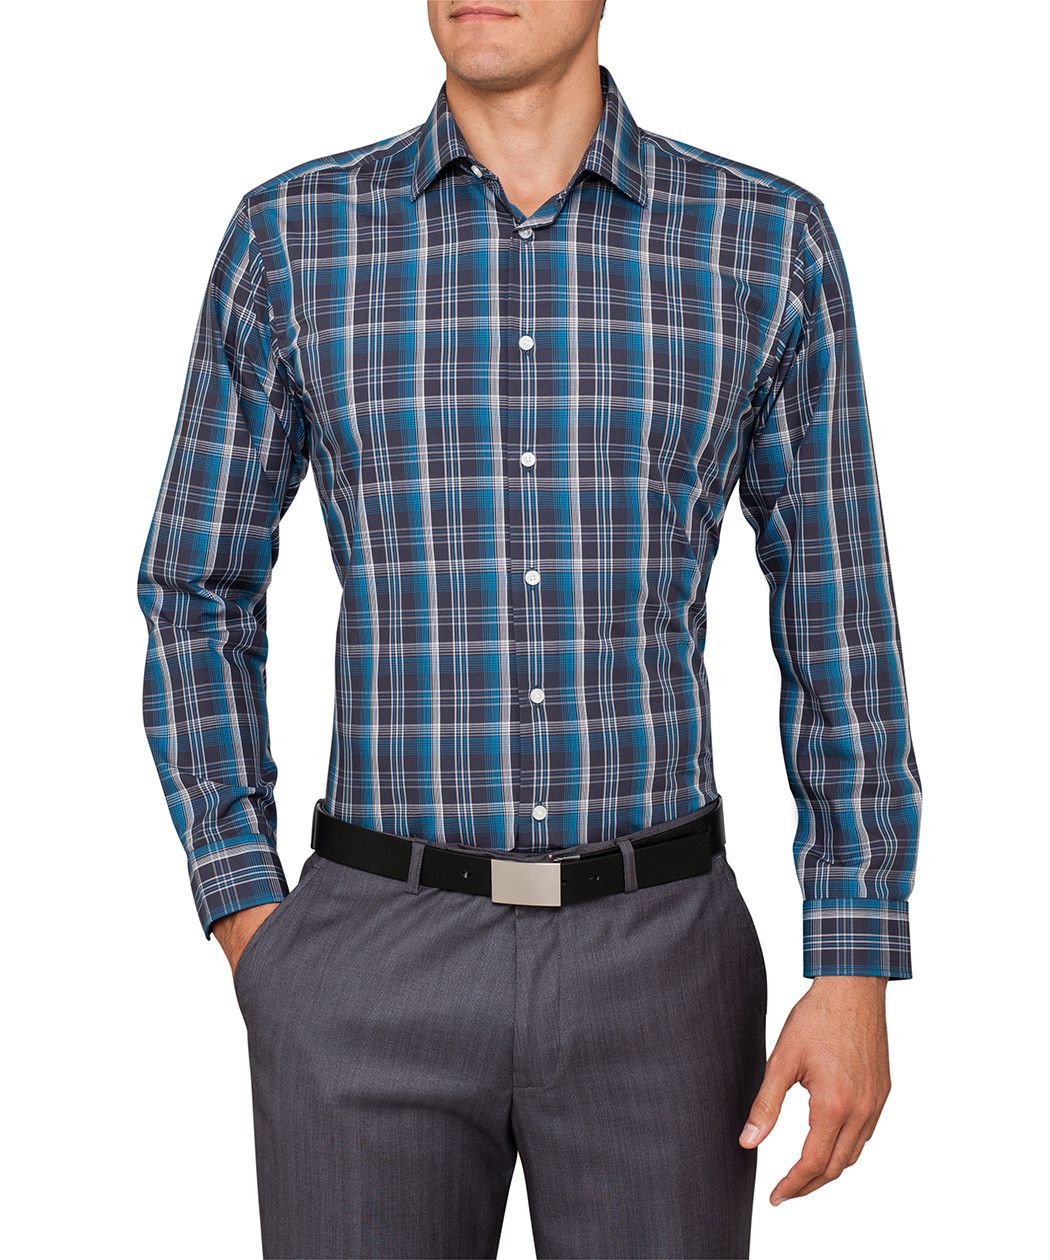 917cb7ee947 Buy men s business shirts online. Find the latest business shirts and formal  shirts for men from top brands.